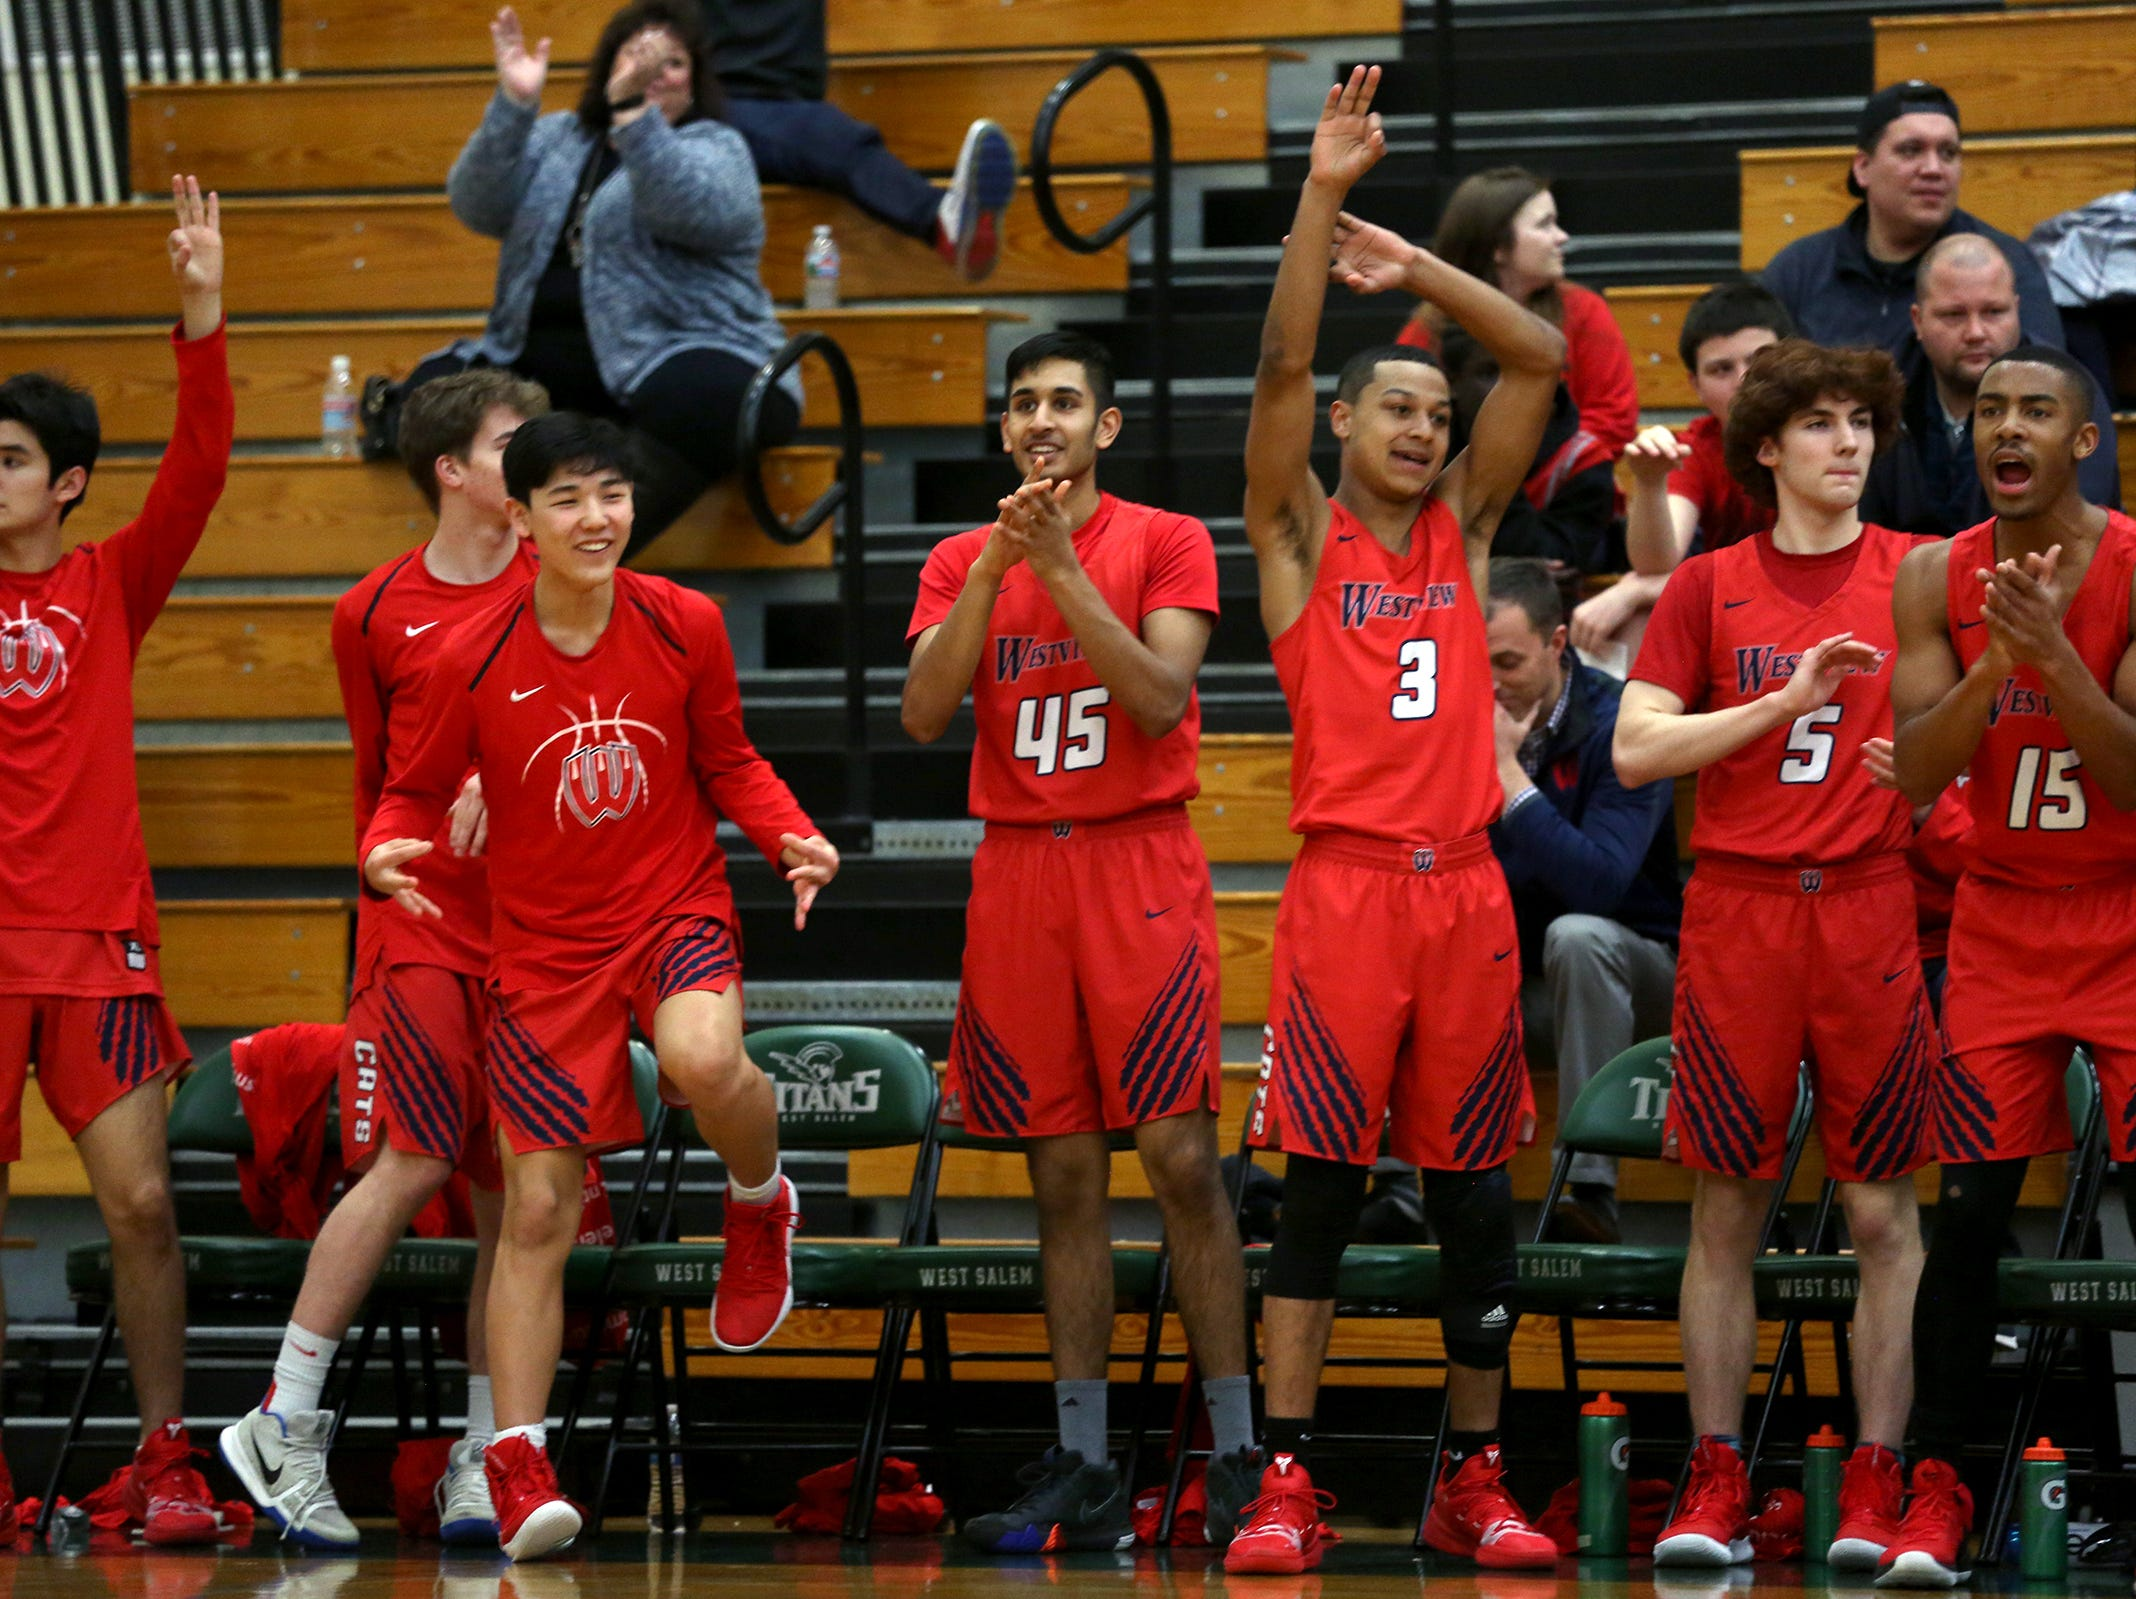 Westview's bench celebrates during the West Salem vs. Westview 6A Boys Basketball State Championships first round at West Salem High School in Salem on Tuesday, Feb. 26, 2019.